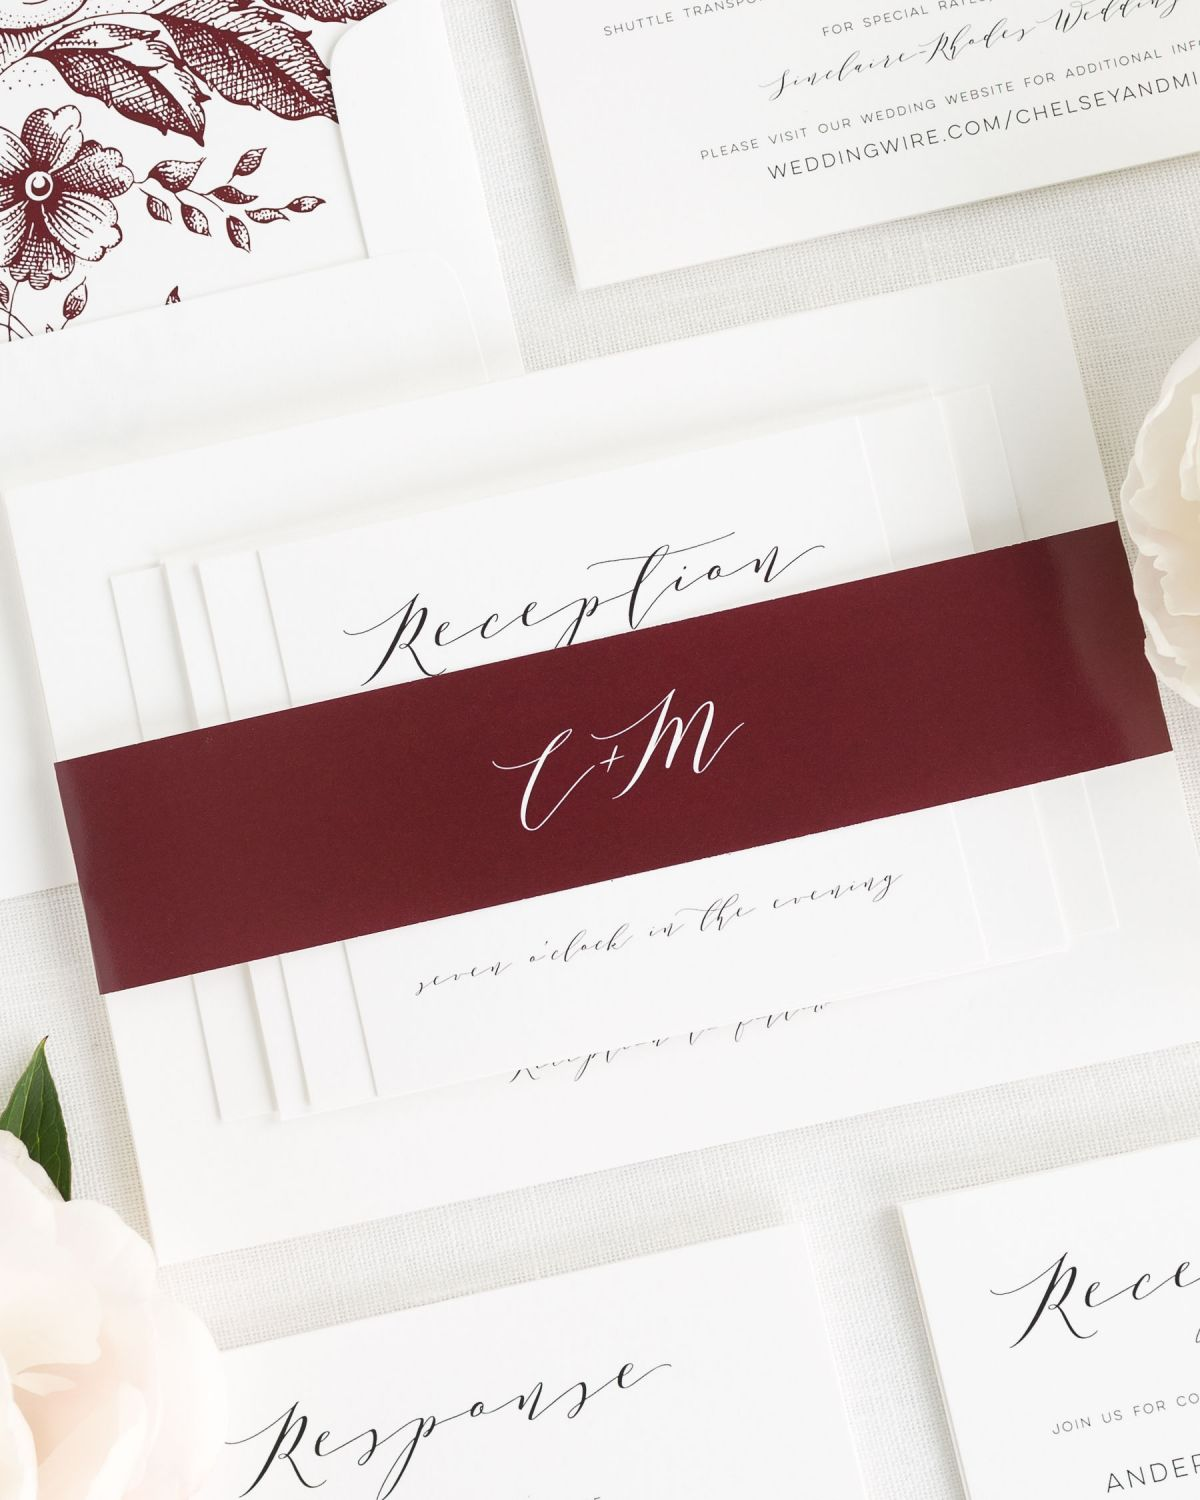 Cabernet Wedding Invitations with Belly Band and Floral Envelope Liner